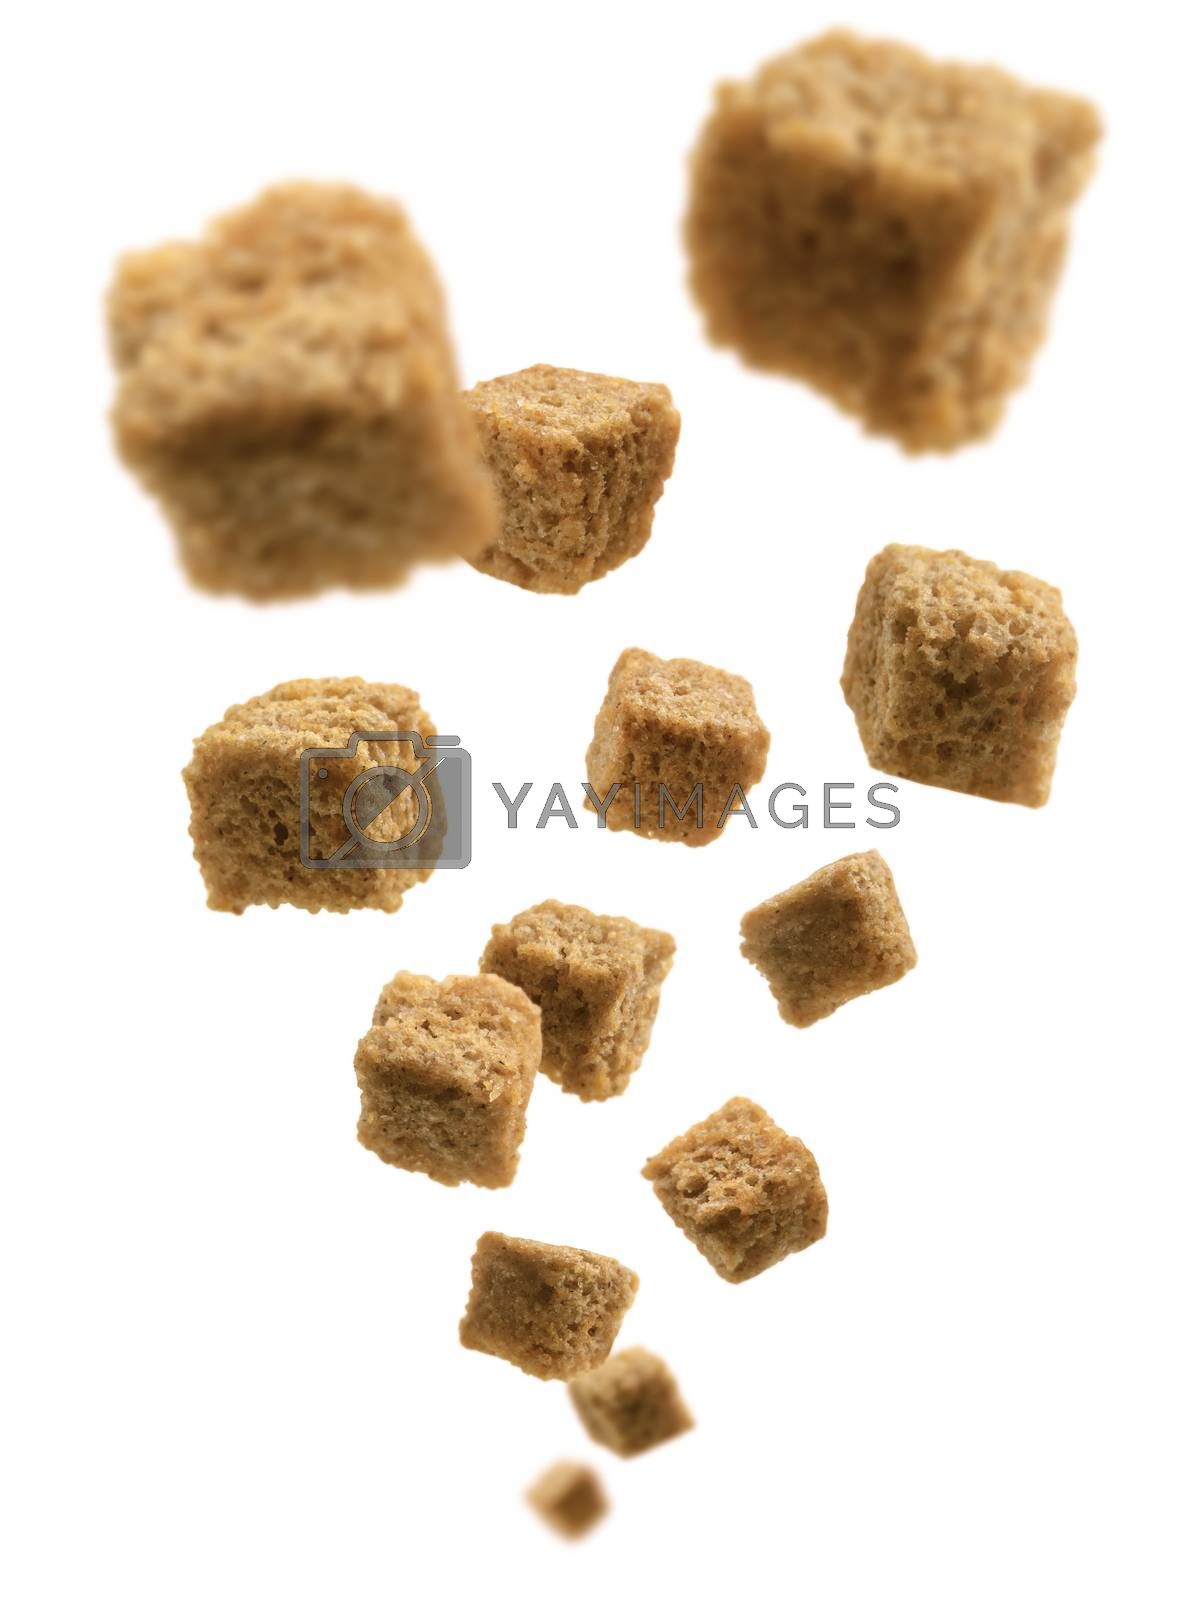 Bread croutons levitate on a white background by butenkow